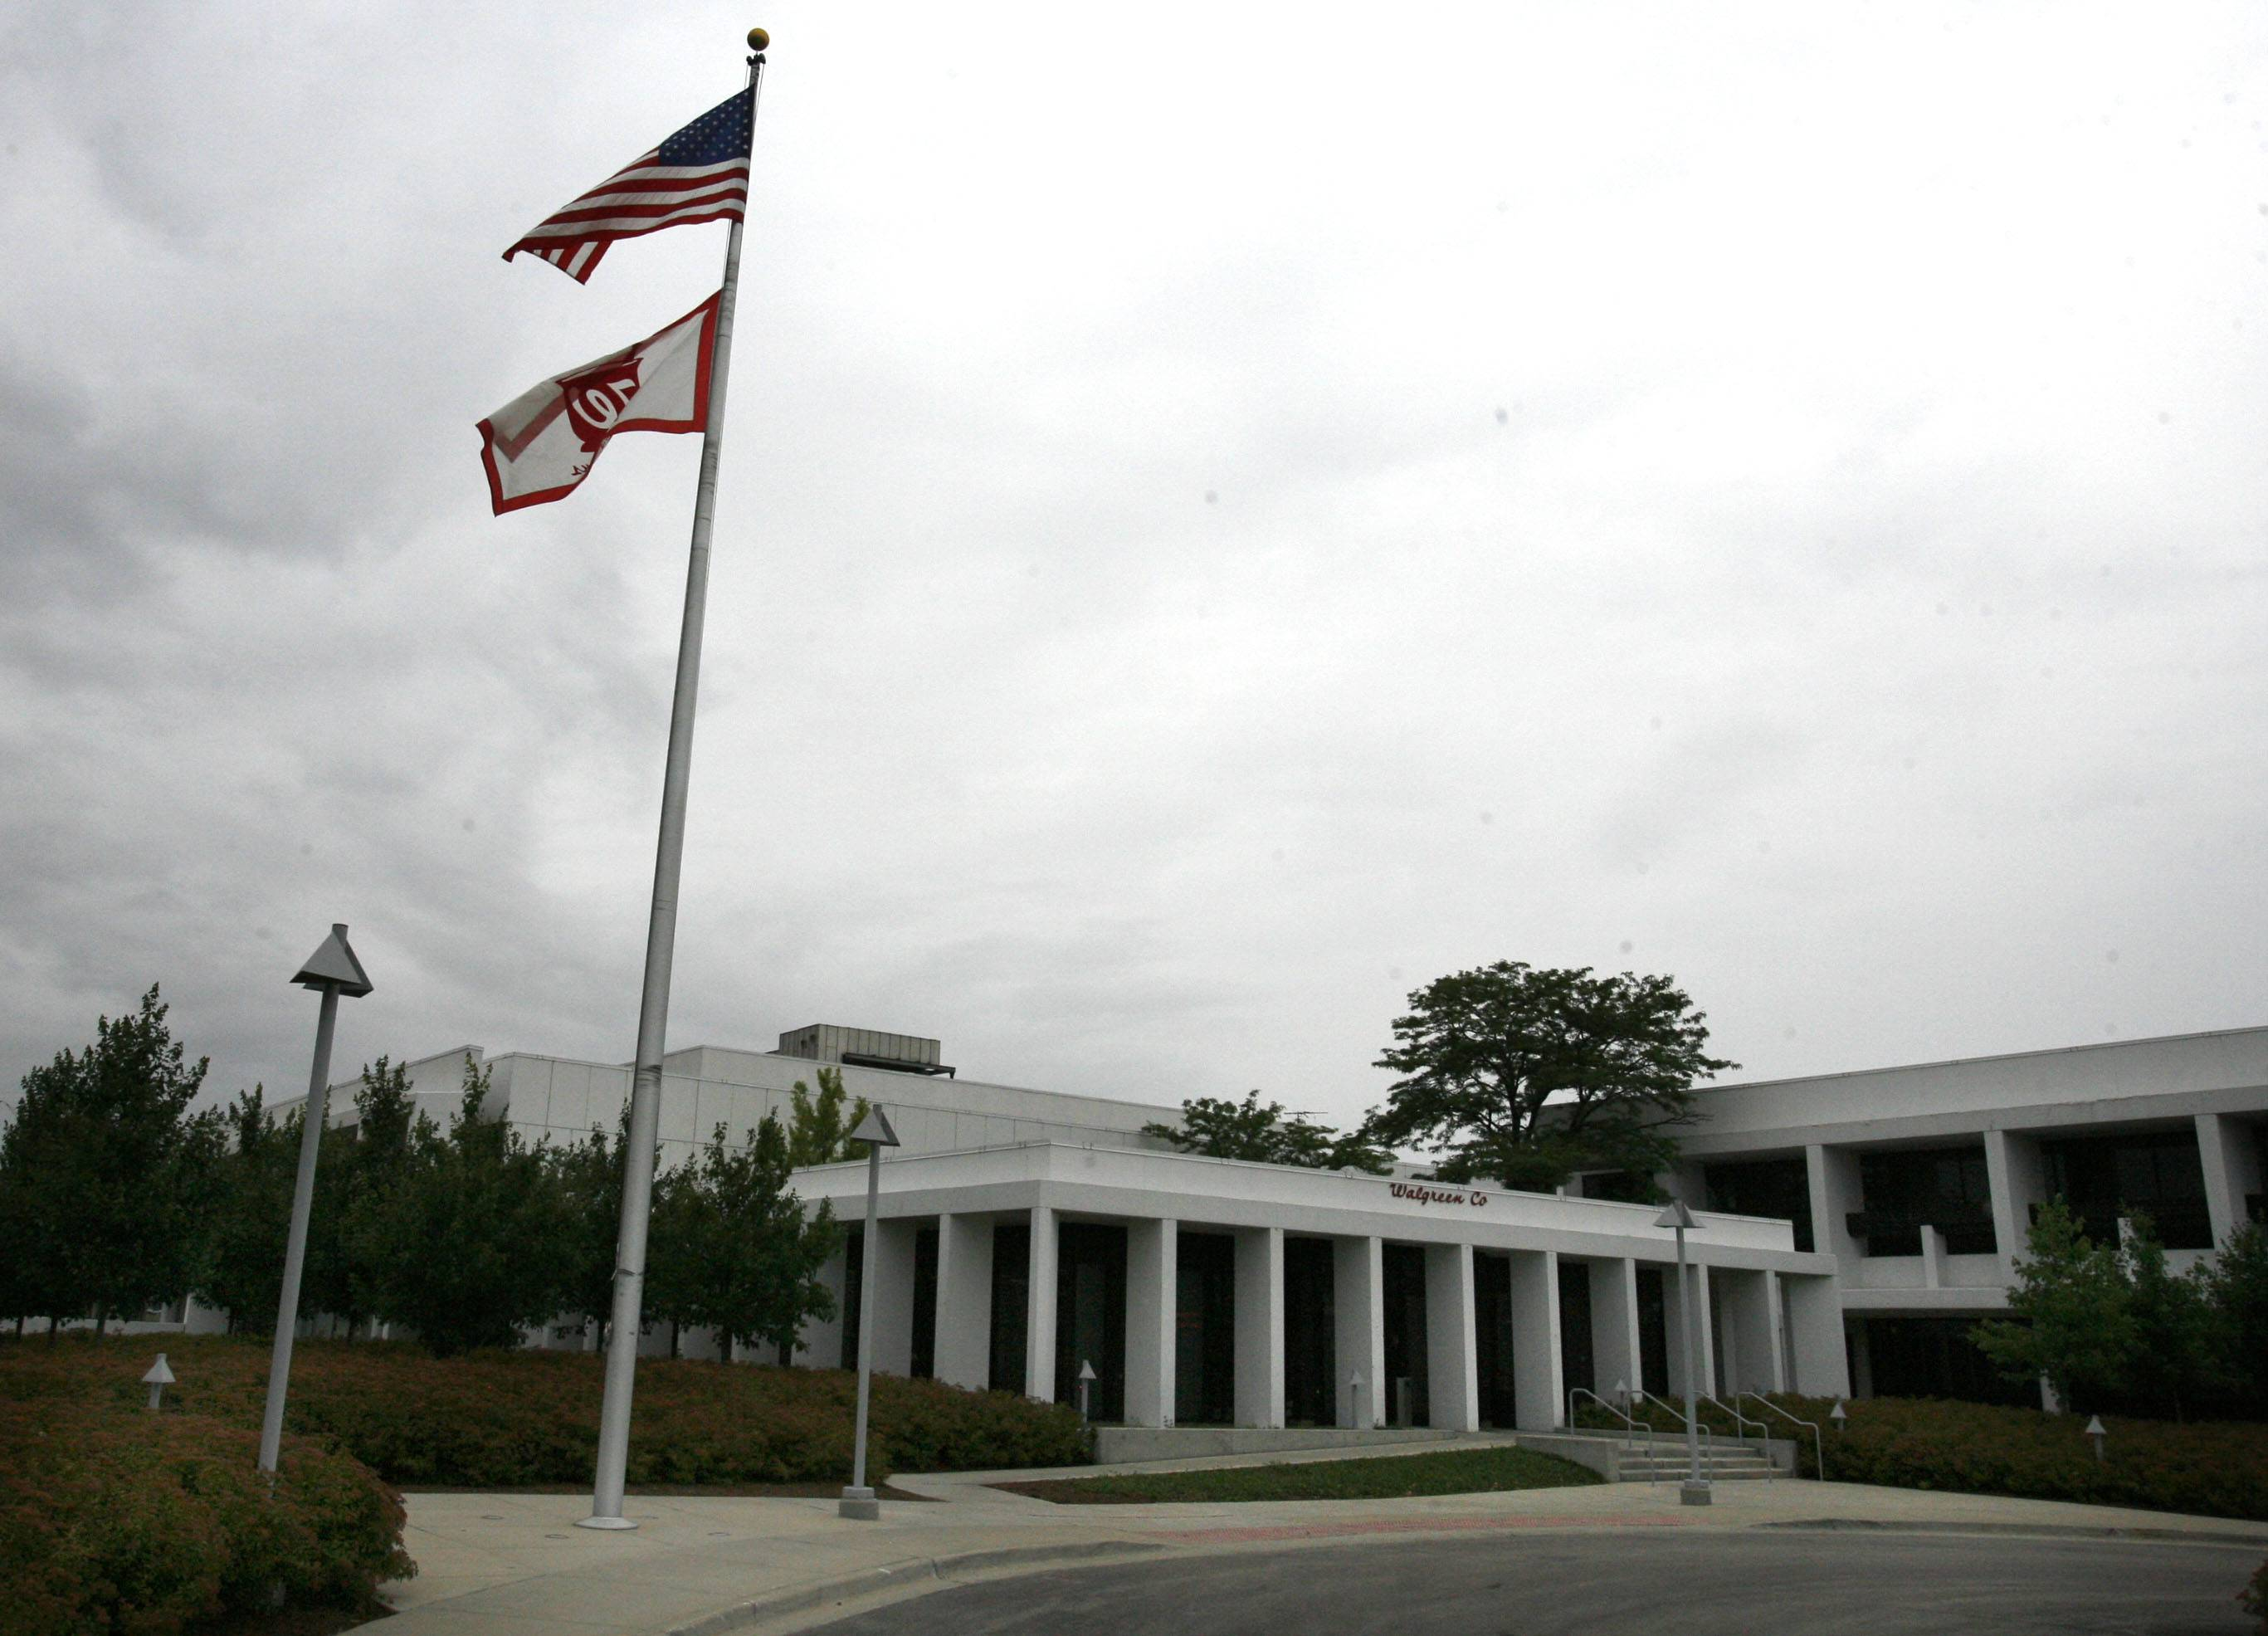 Walgreen Co. currently operates out of its Deerfield campus.